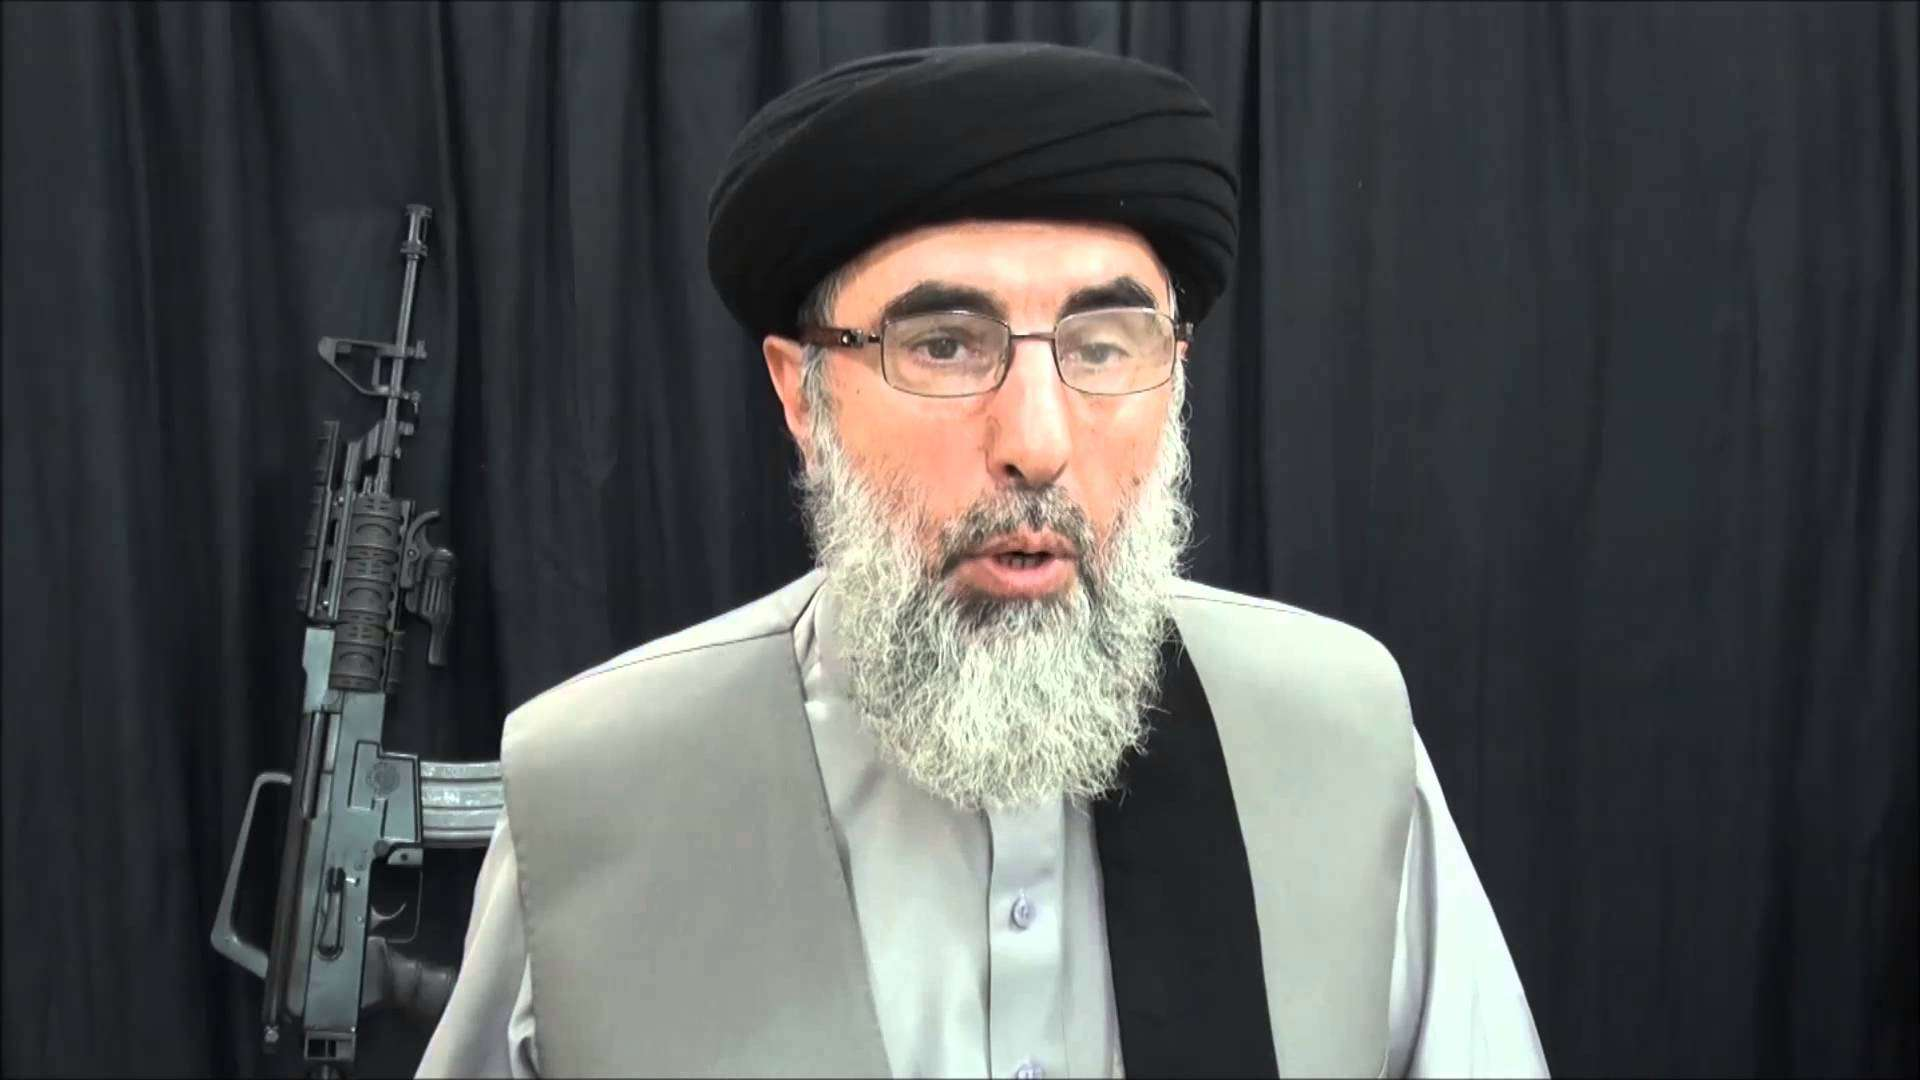 581439 cef2792682d2455dbe3f9a9230e6c560 mv2 - UN Order to Bring Hekmatyar to Trial for Committed Crimes